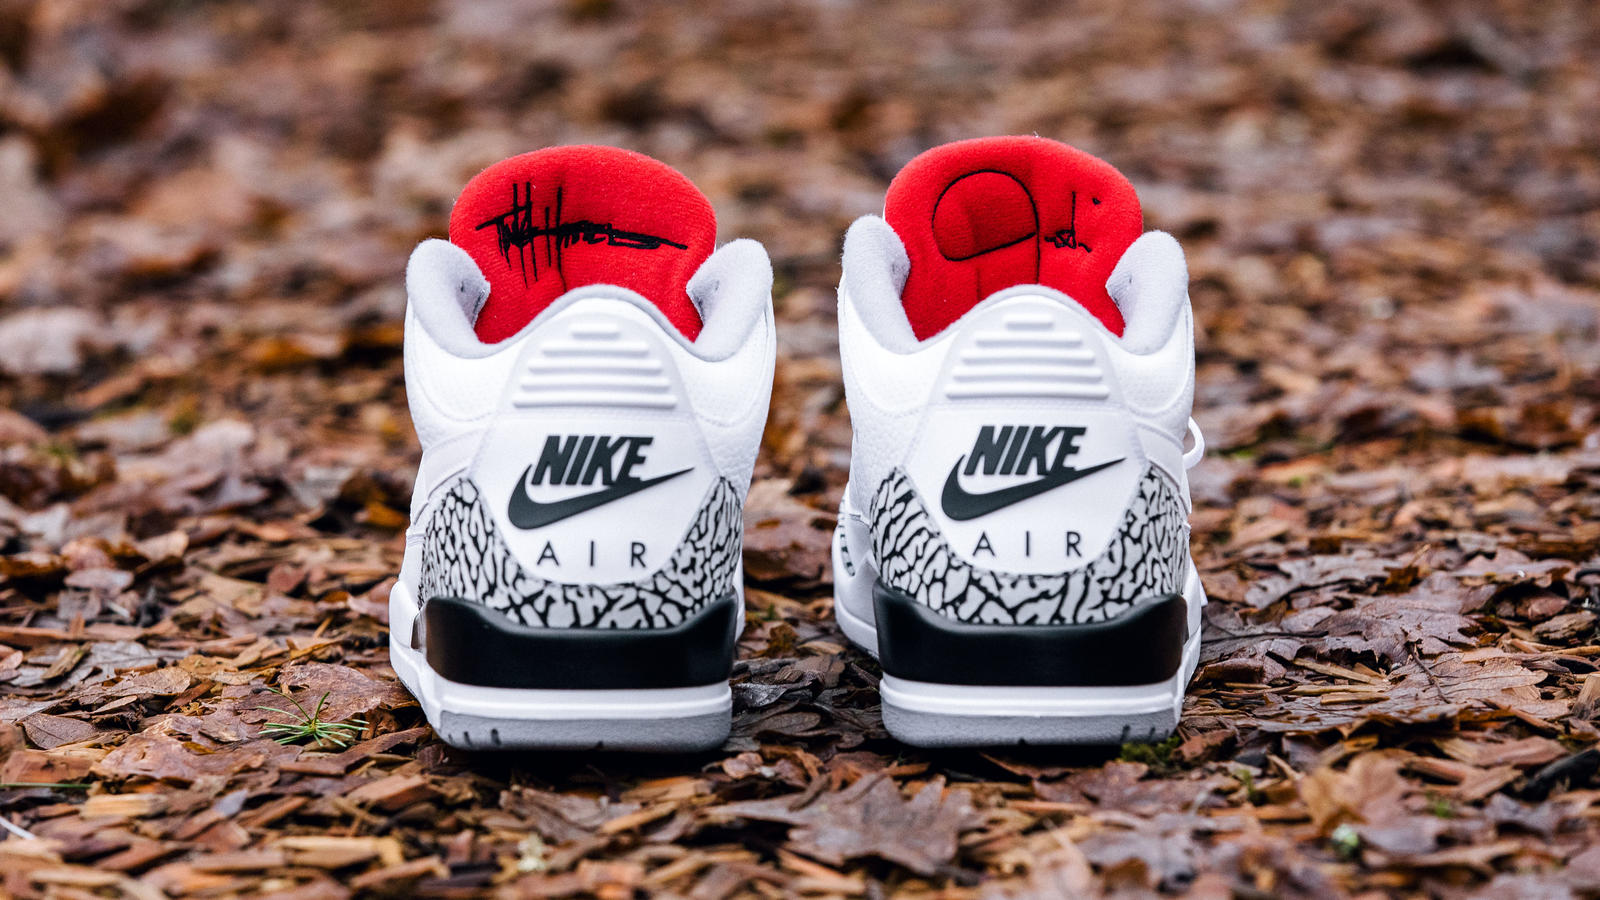 4b37838fb8cf Nike Air Jordan 3 Justin Timberlake Tinker Hatfield Collaboration ...